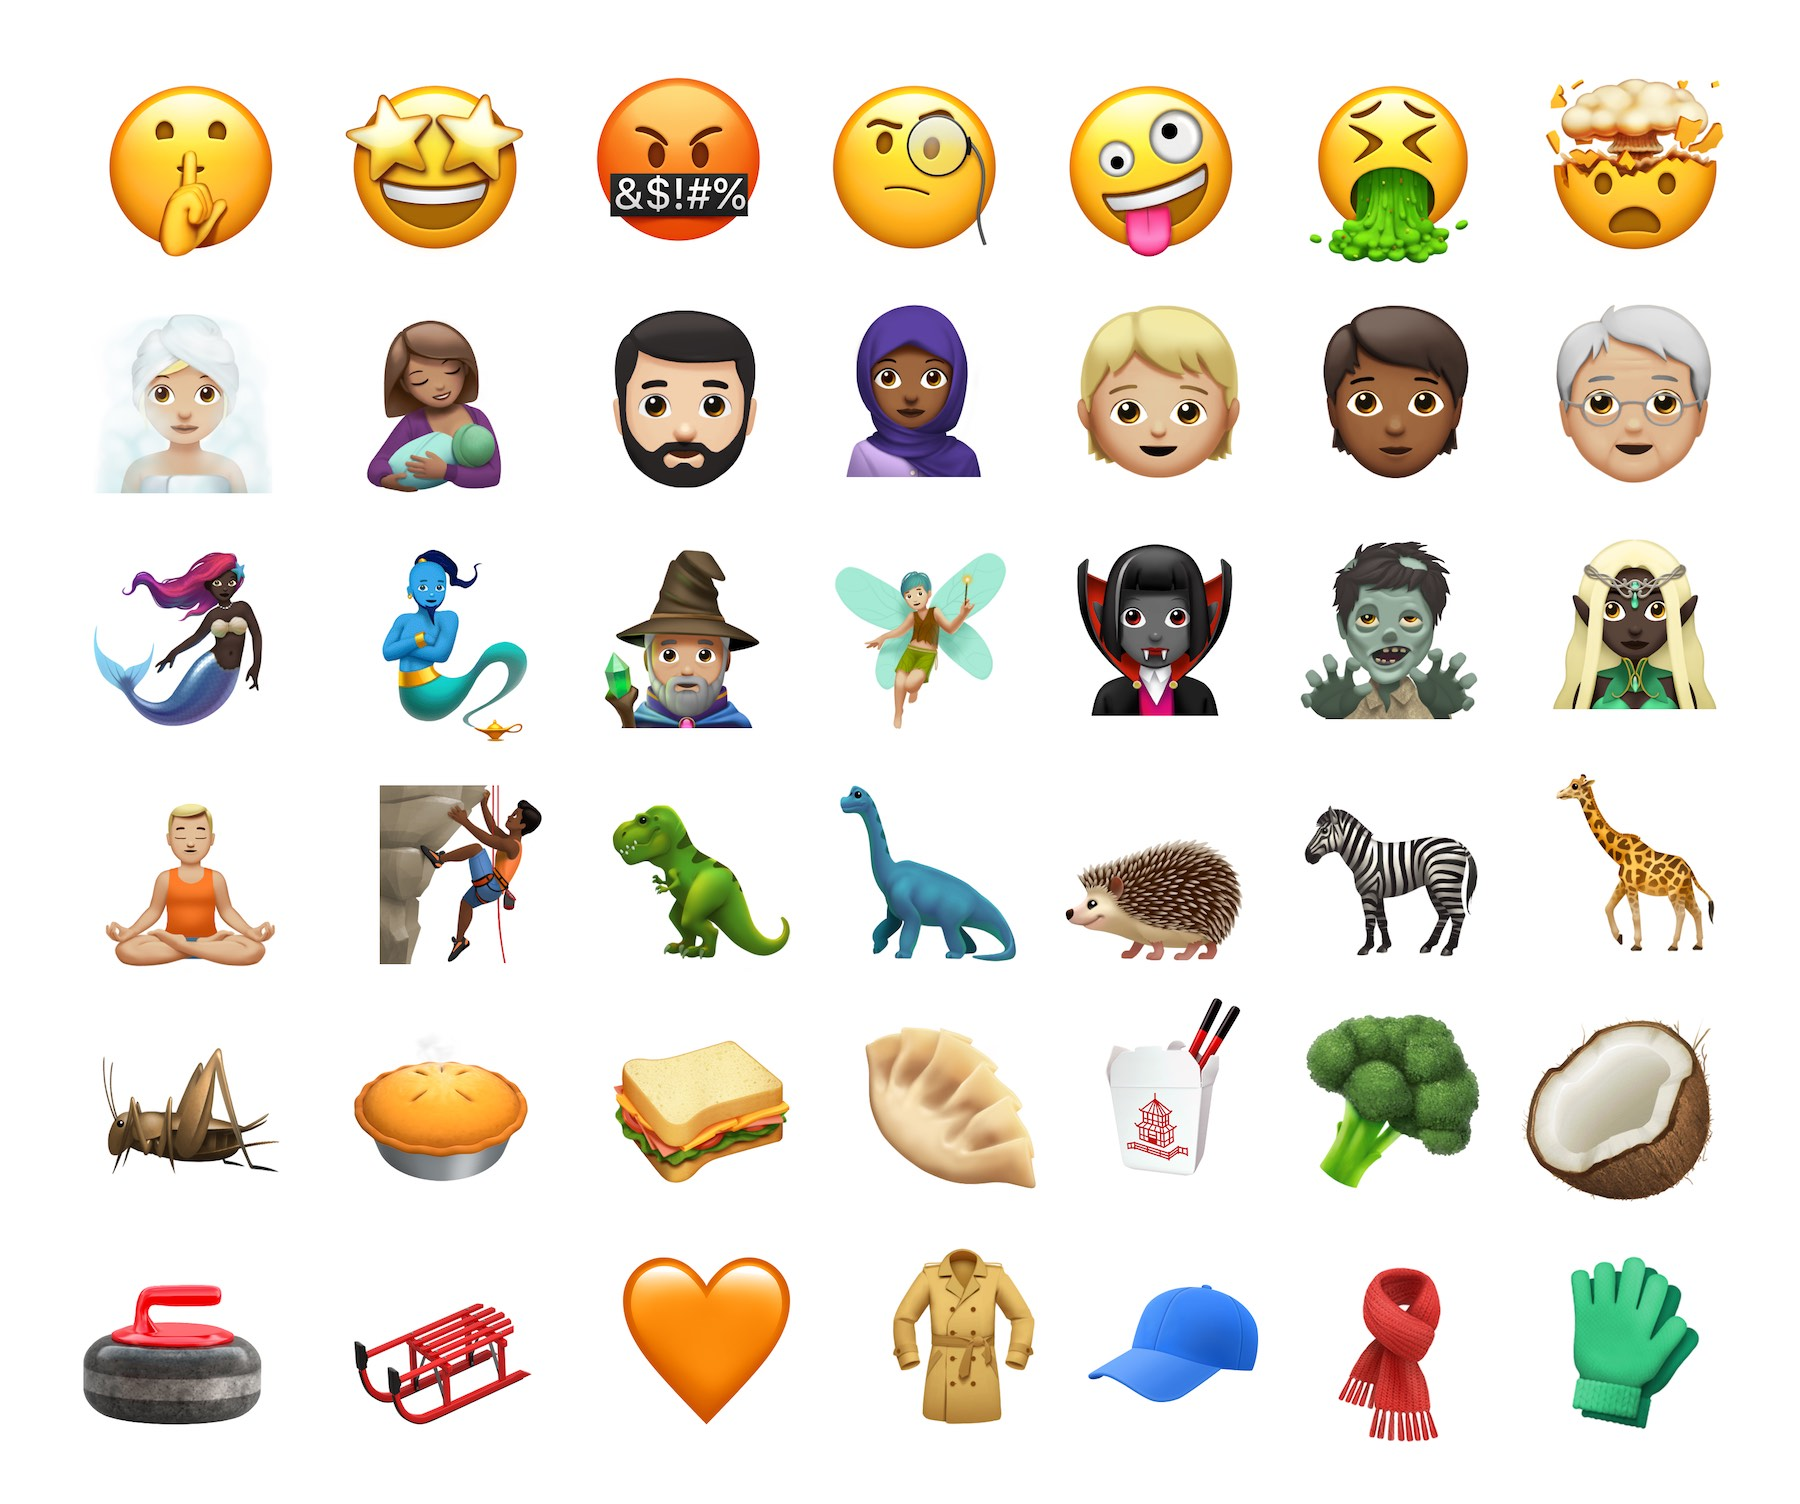 2017-ios11.1-new-emojis-emoijpedia-apple